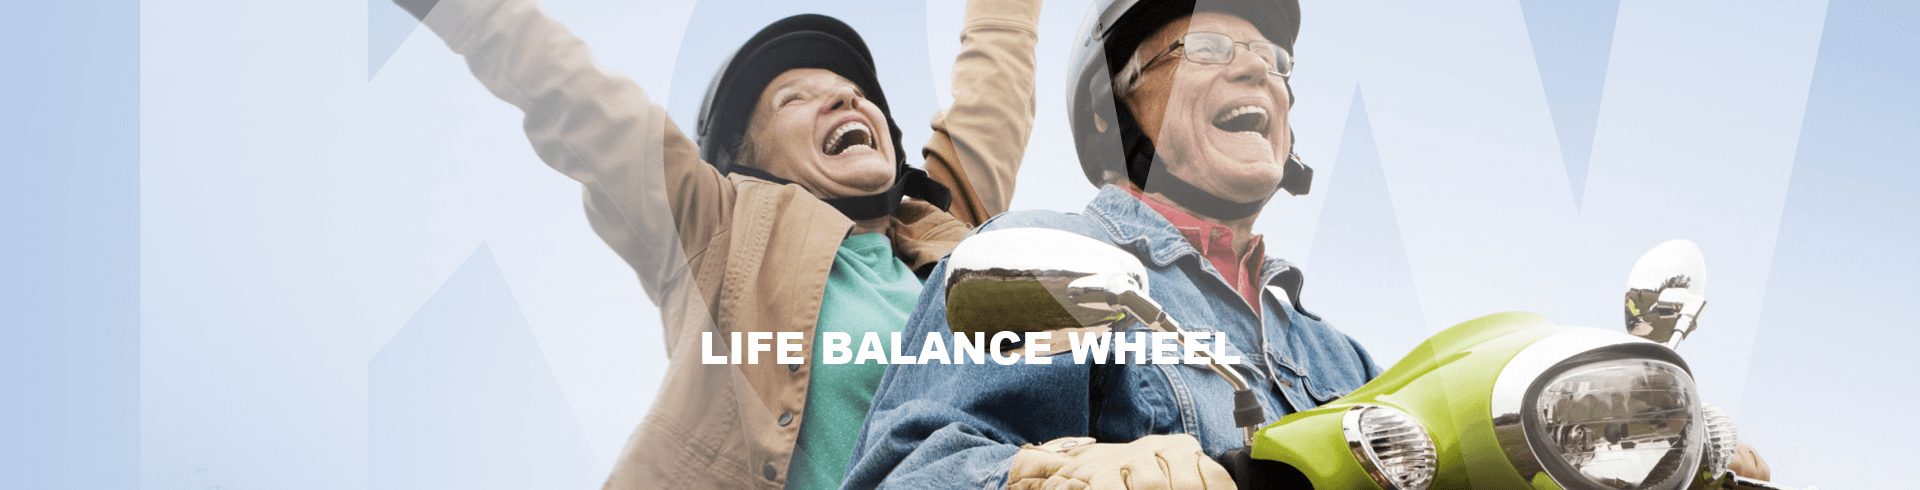 KW-Coaching-Life-Balance-wheel-slider2